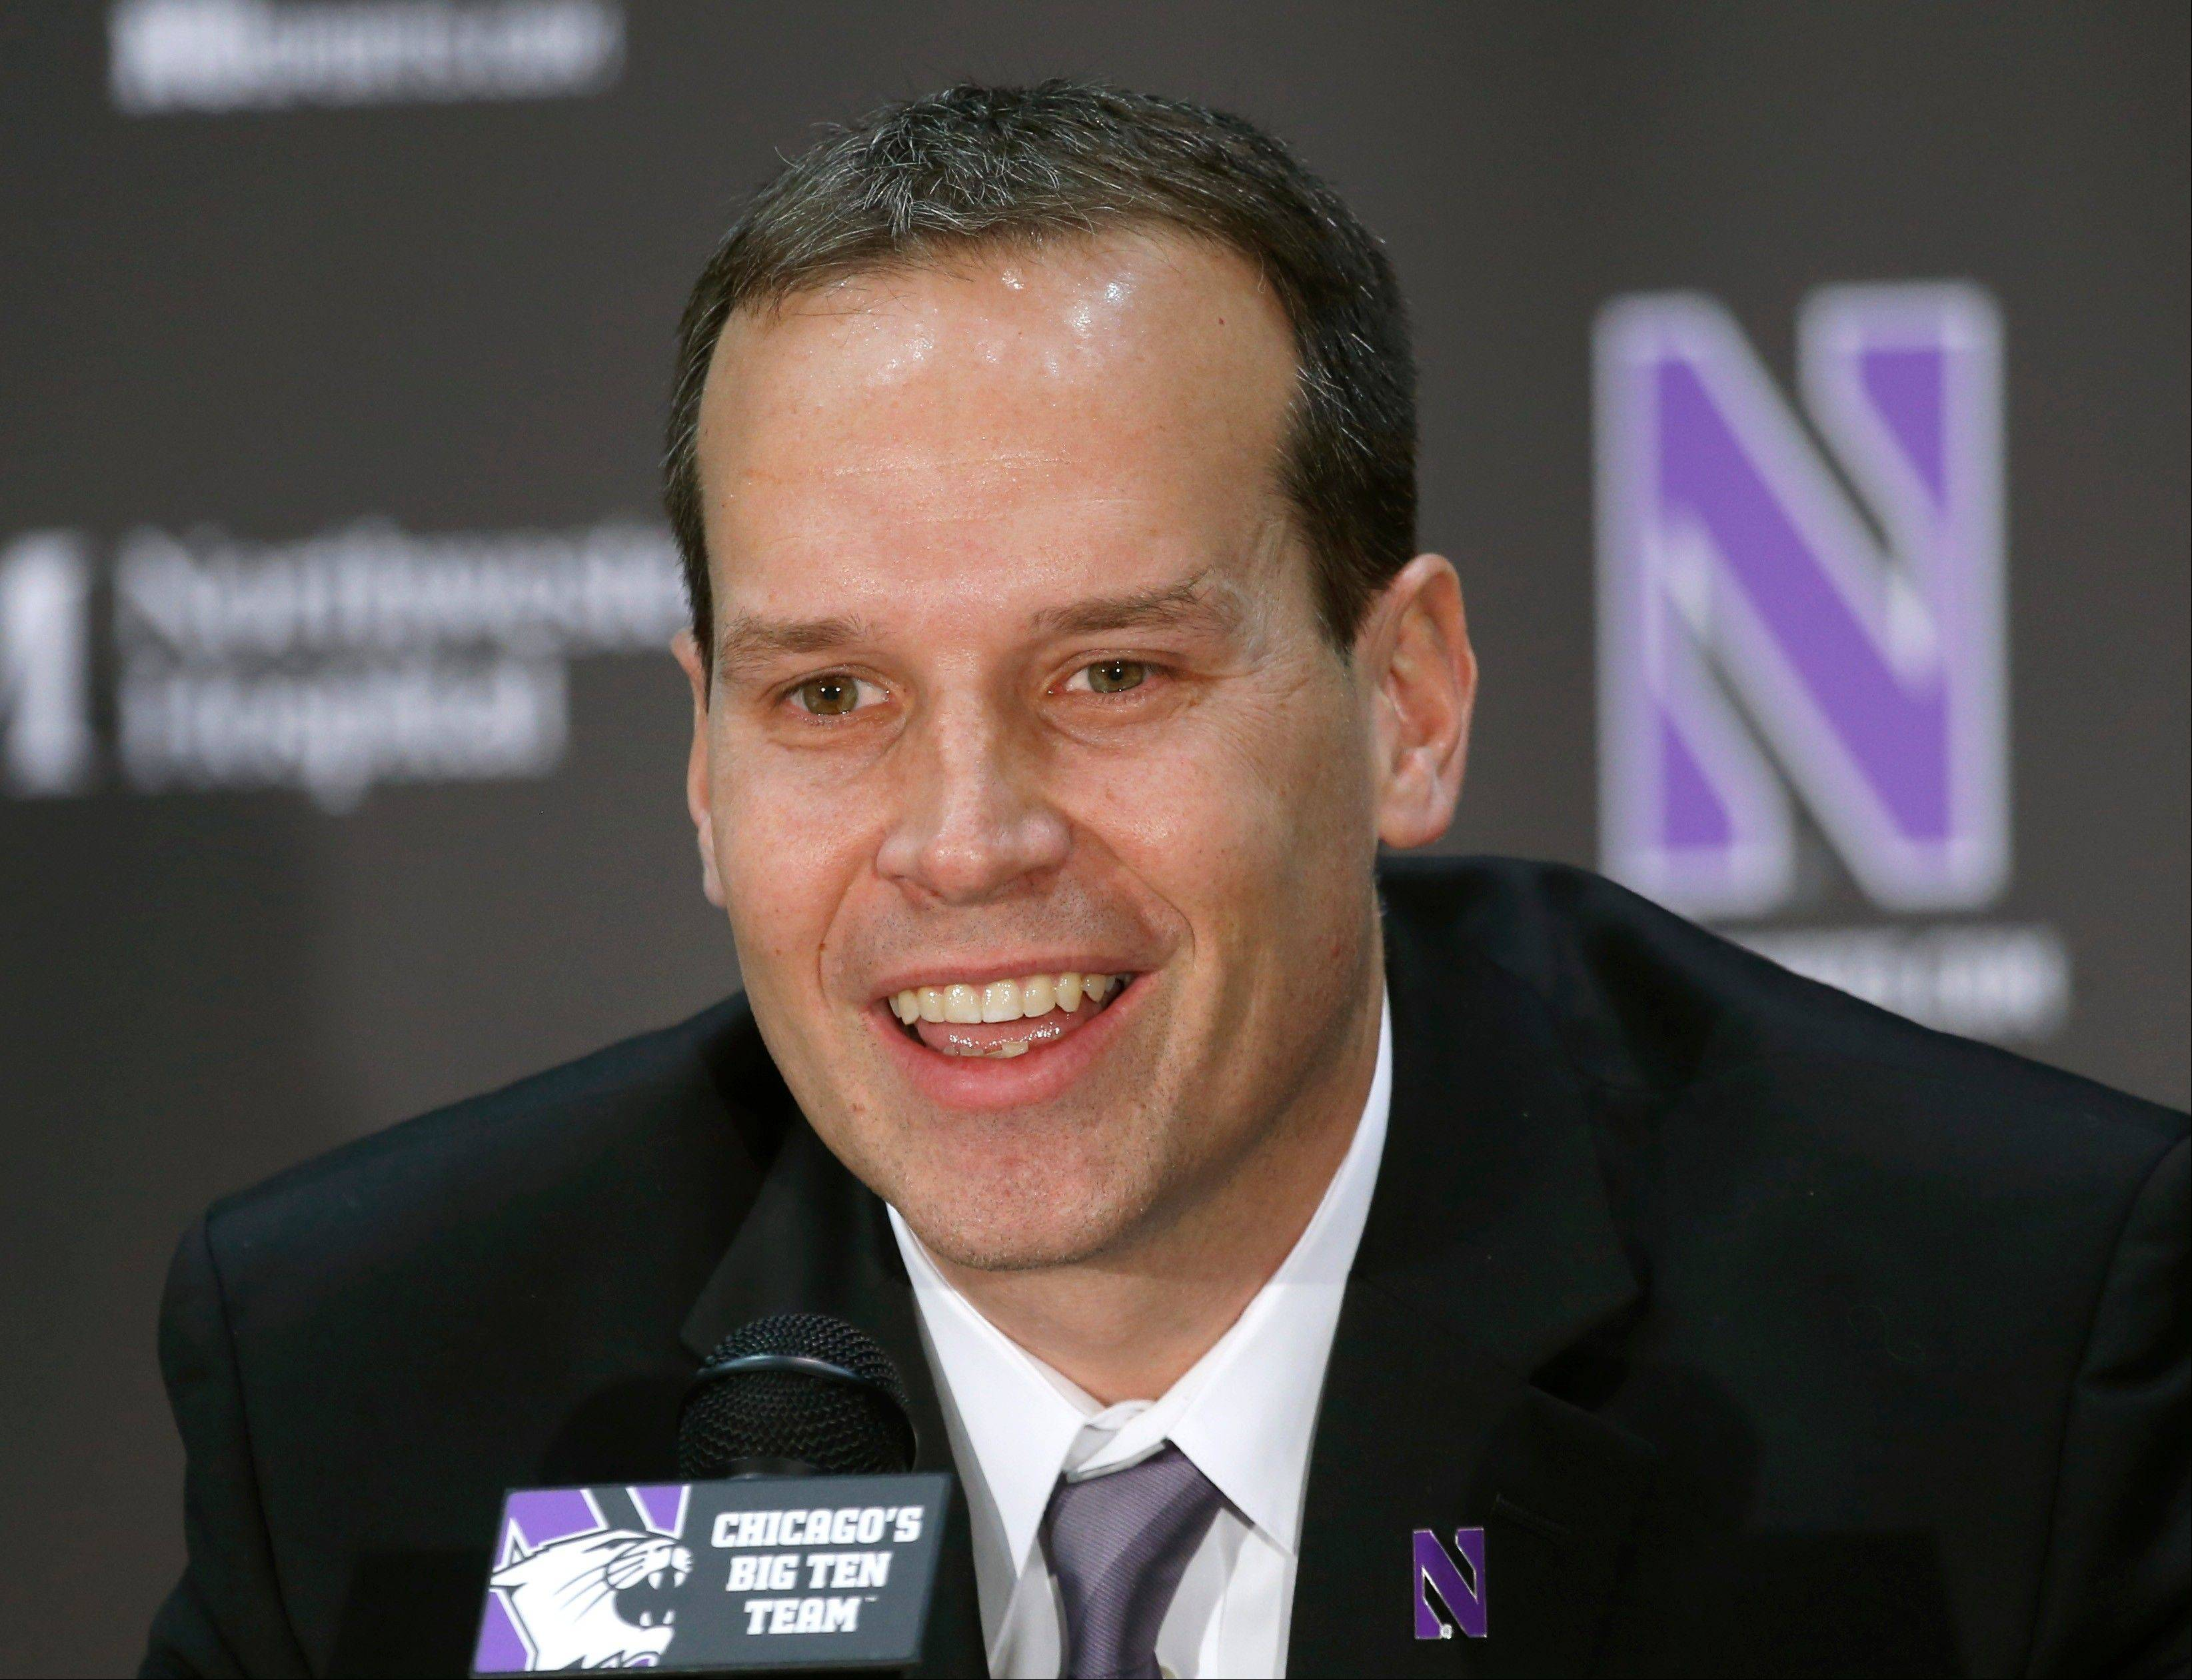 Chris Collins, Northwestern University's new head basketball coach, responds to a question during a news conferenceTuesday, April 2, 2013 in Evanston, Ill.